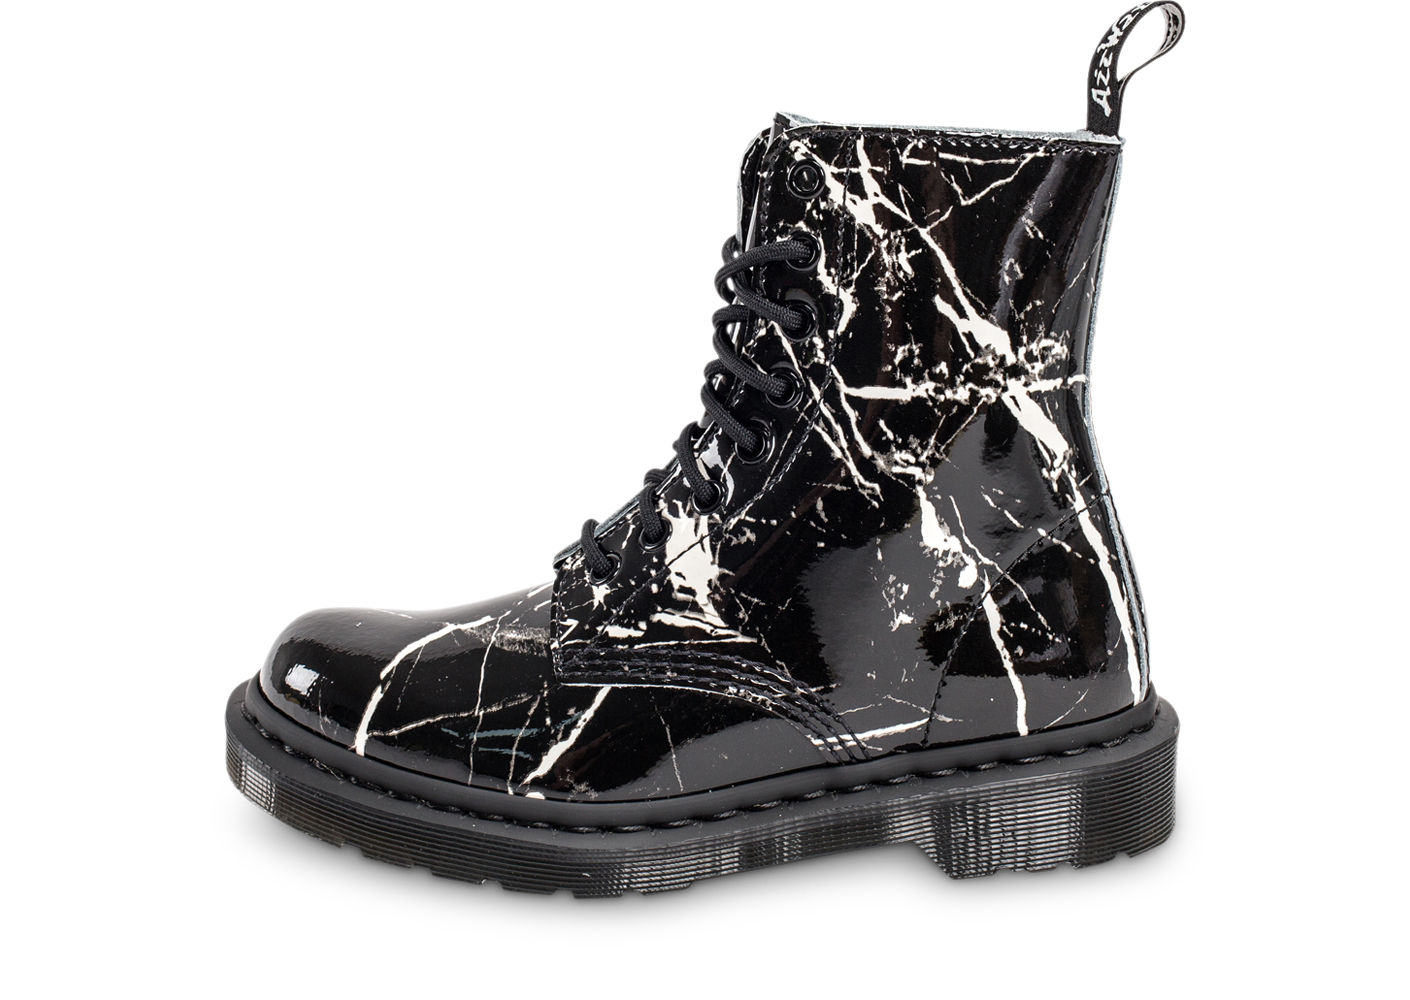 Save with a 25% Off Dr Martens coupon code and other free promo code, discount voucher at settlements-cause.ml There are 32 settlements-cause.ml coupons available in December